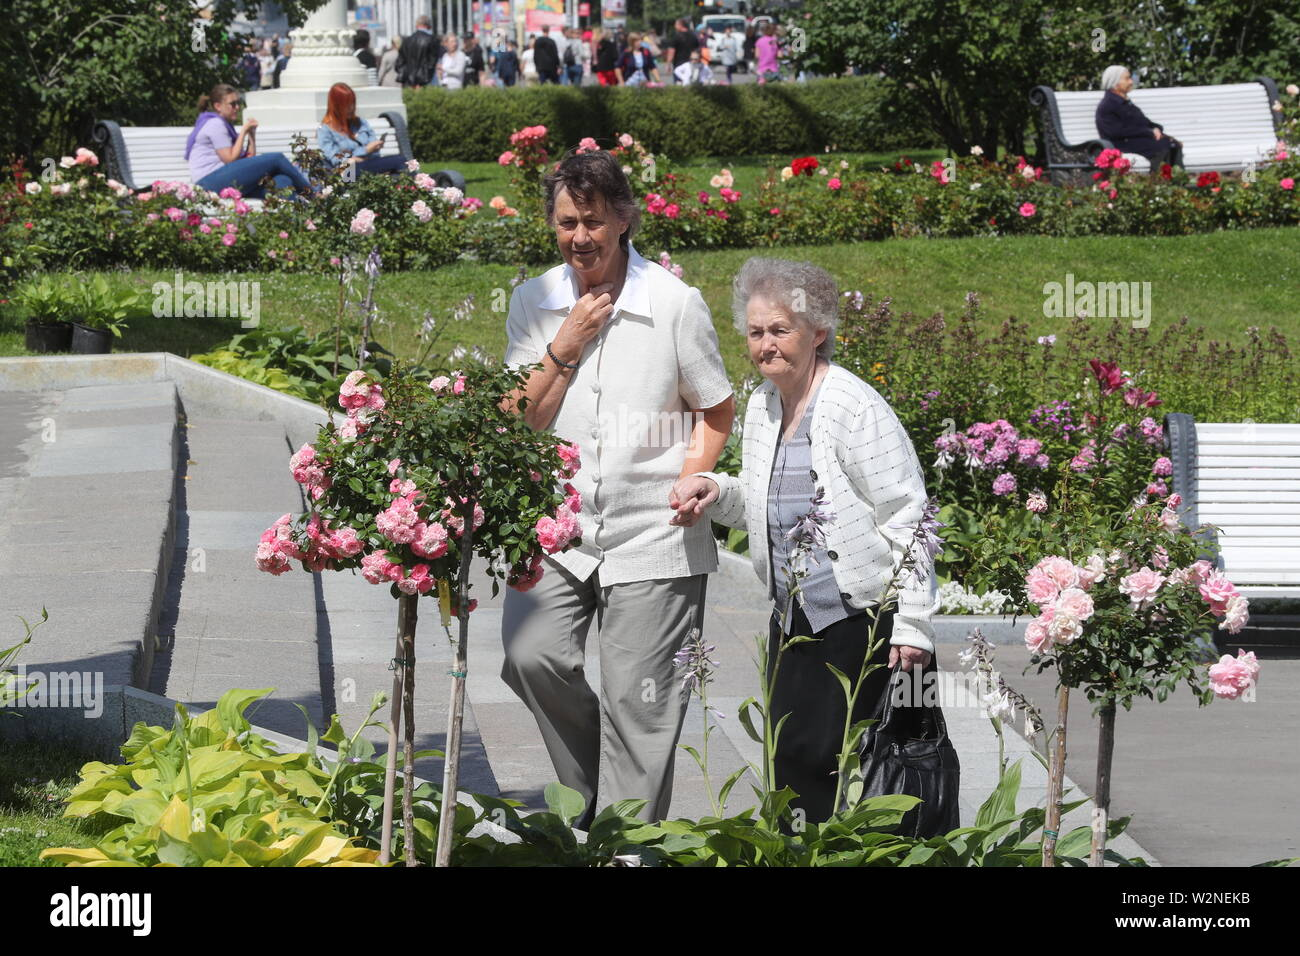 Moscow, Russia. 10th July, 2019. MOSCOW, RUSSIA - JULY 10, 2019: Elderly women taking a walk at the VDNKh exhibition centre and park. Alexander Shcherbak/TASS Credit: ITAR-TASS News Agency/Alamy Live News Stock Photo